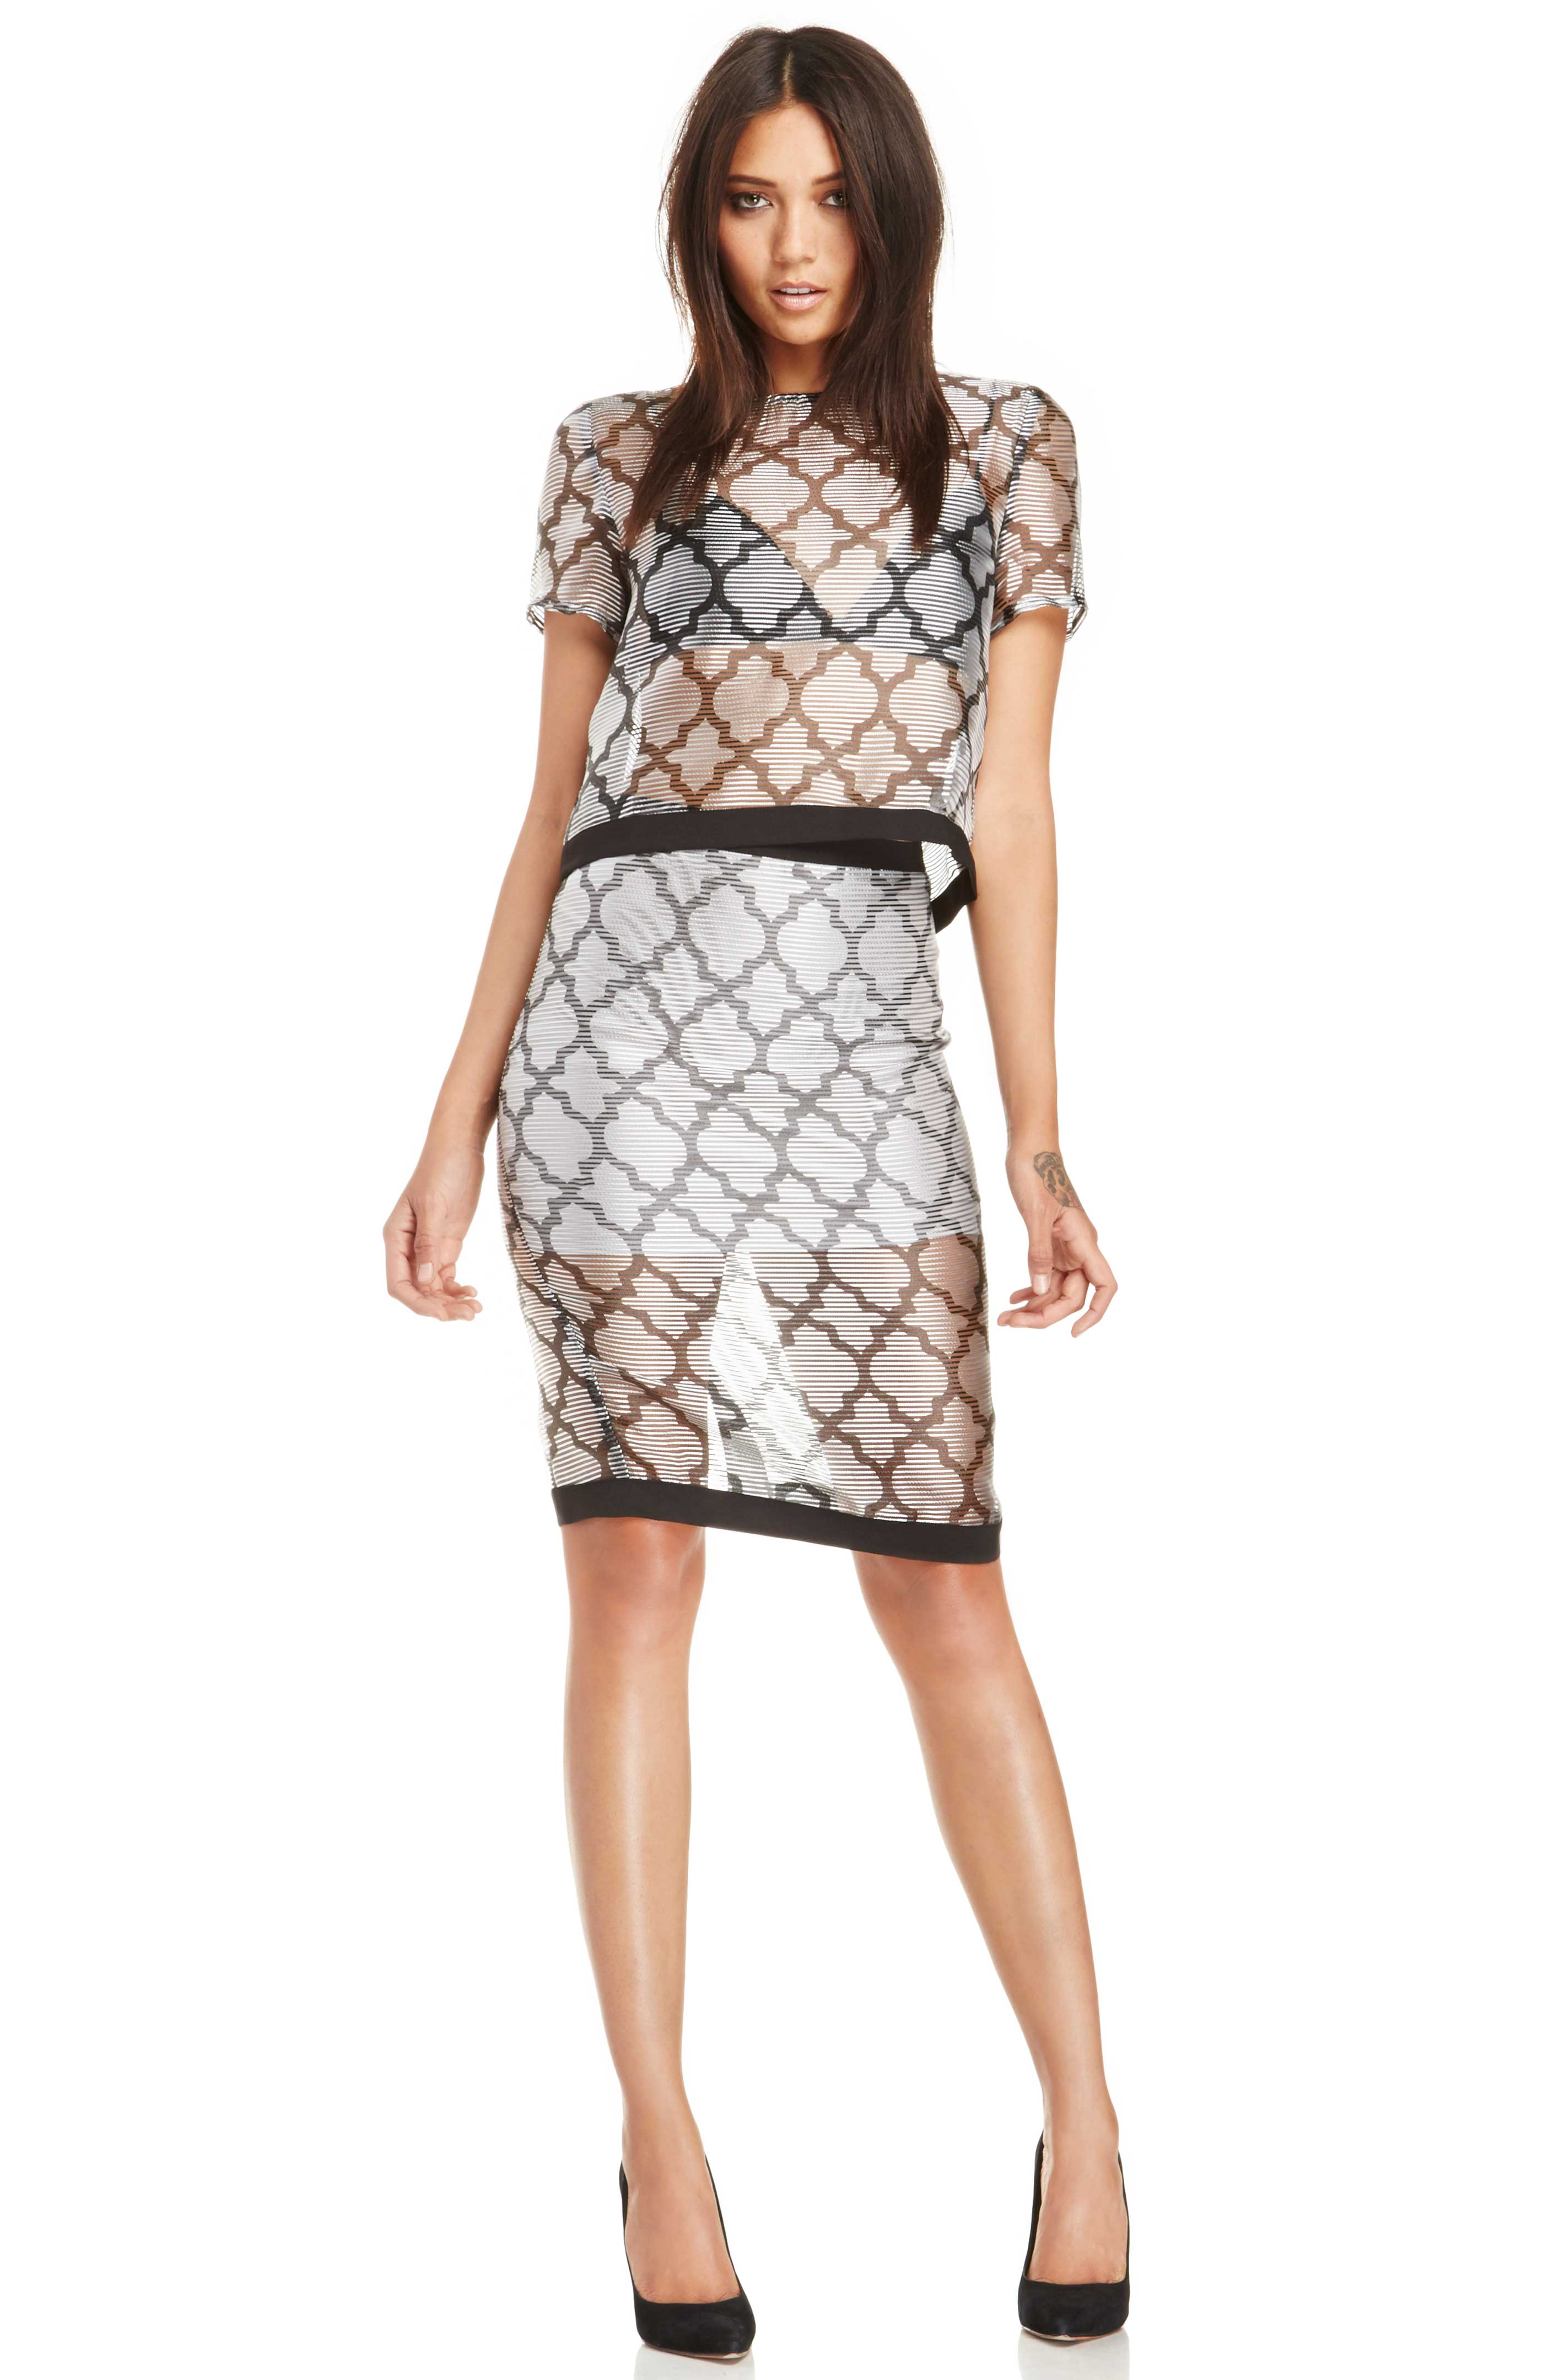 Three Of Something Moroccan Tile Skirt in Black/Silver XS - L at DAILYLOOK